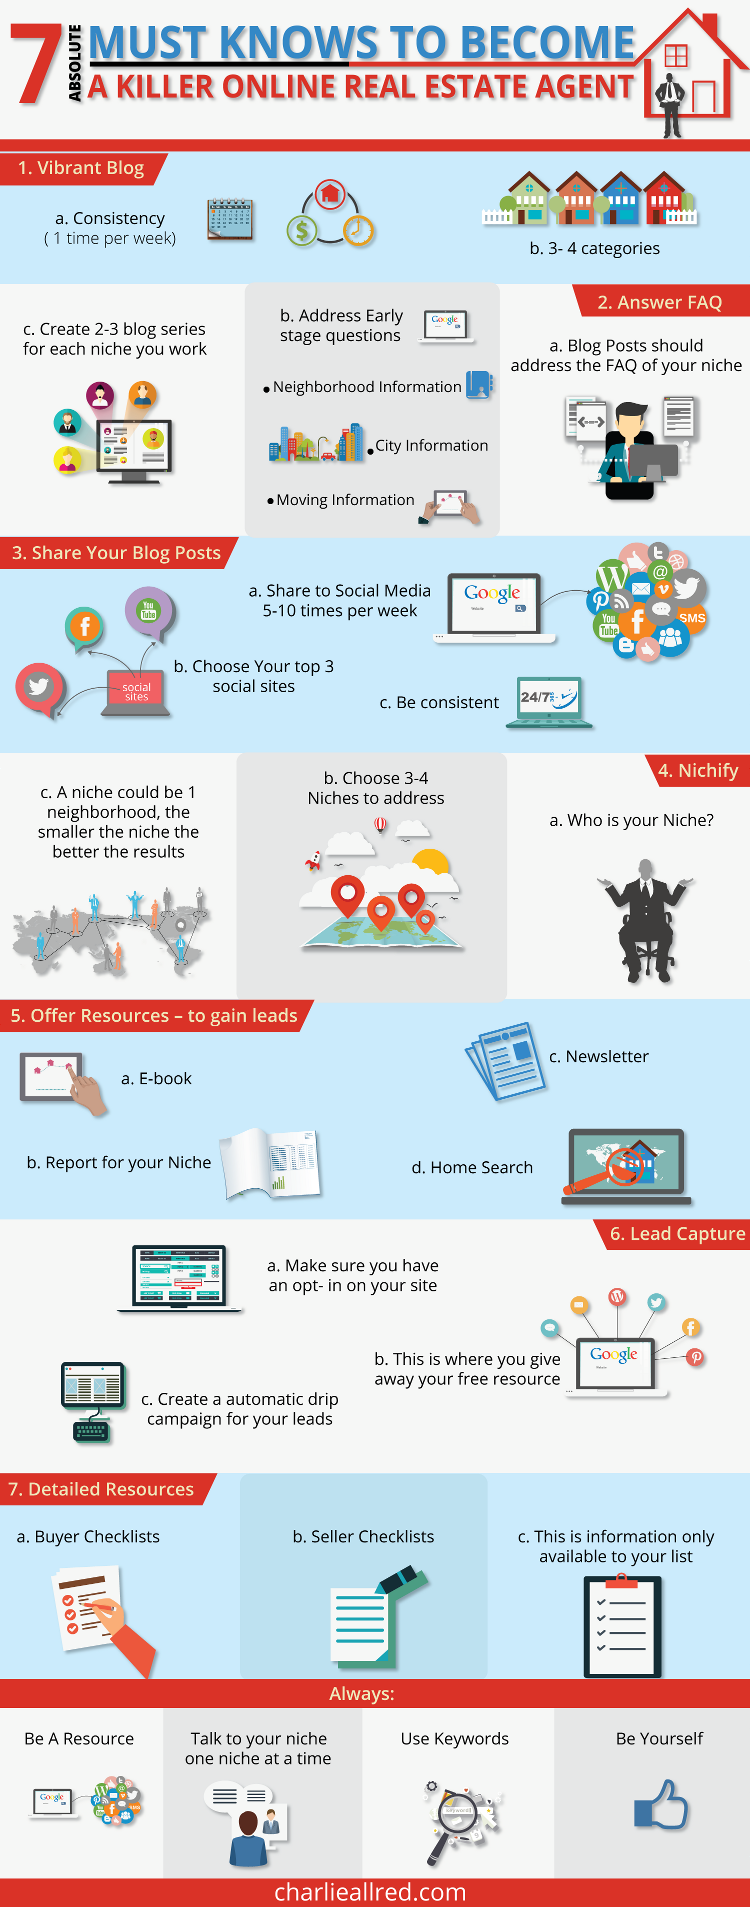 ypn 7 ways to kill it online